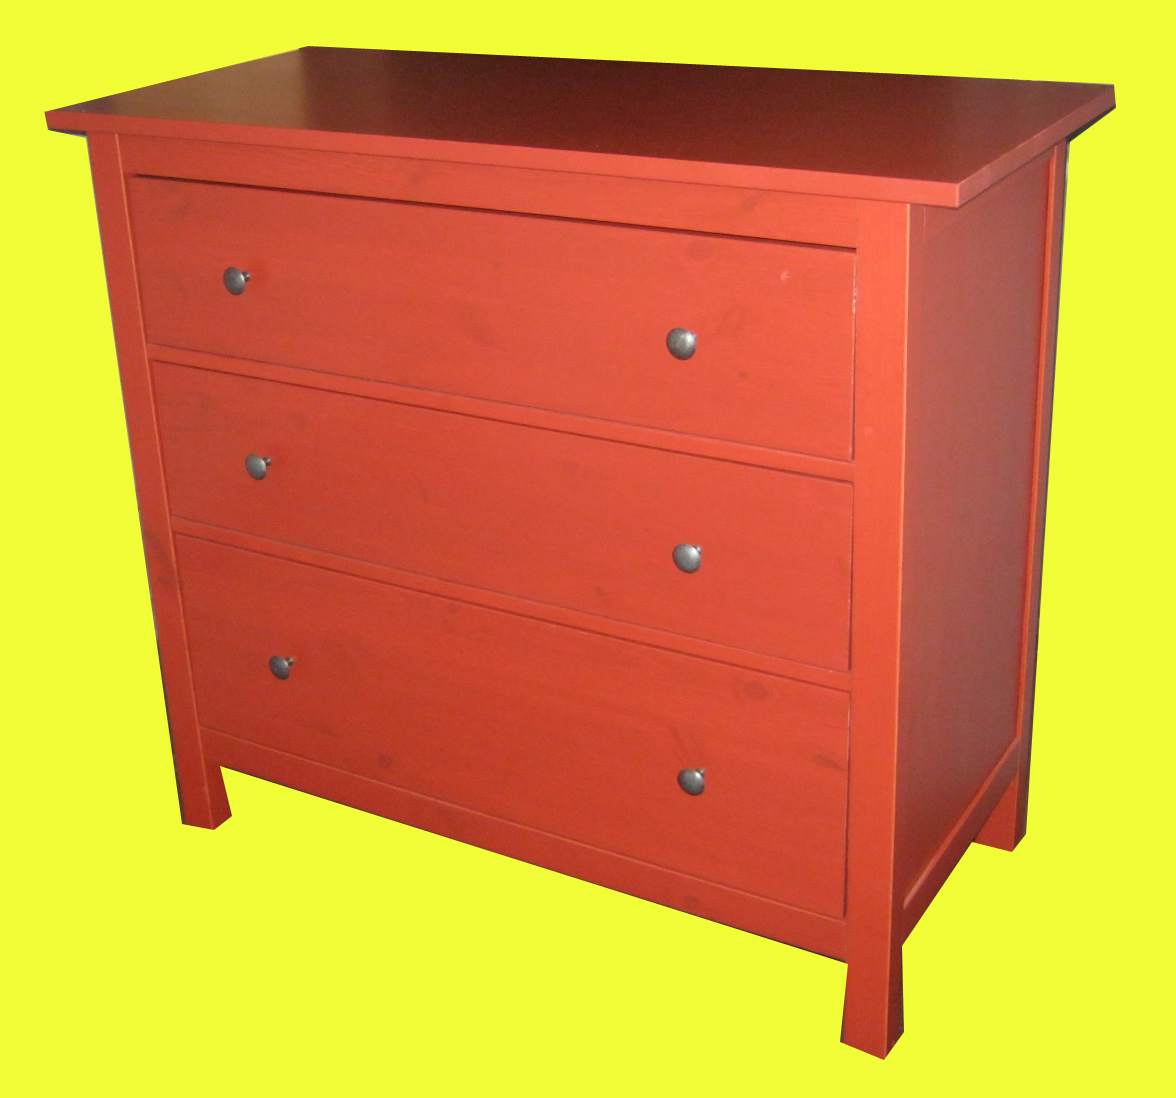 uhuru furniture collectibles ikea hemnes red dresser sold